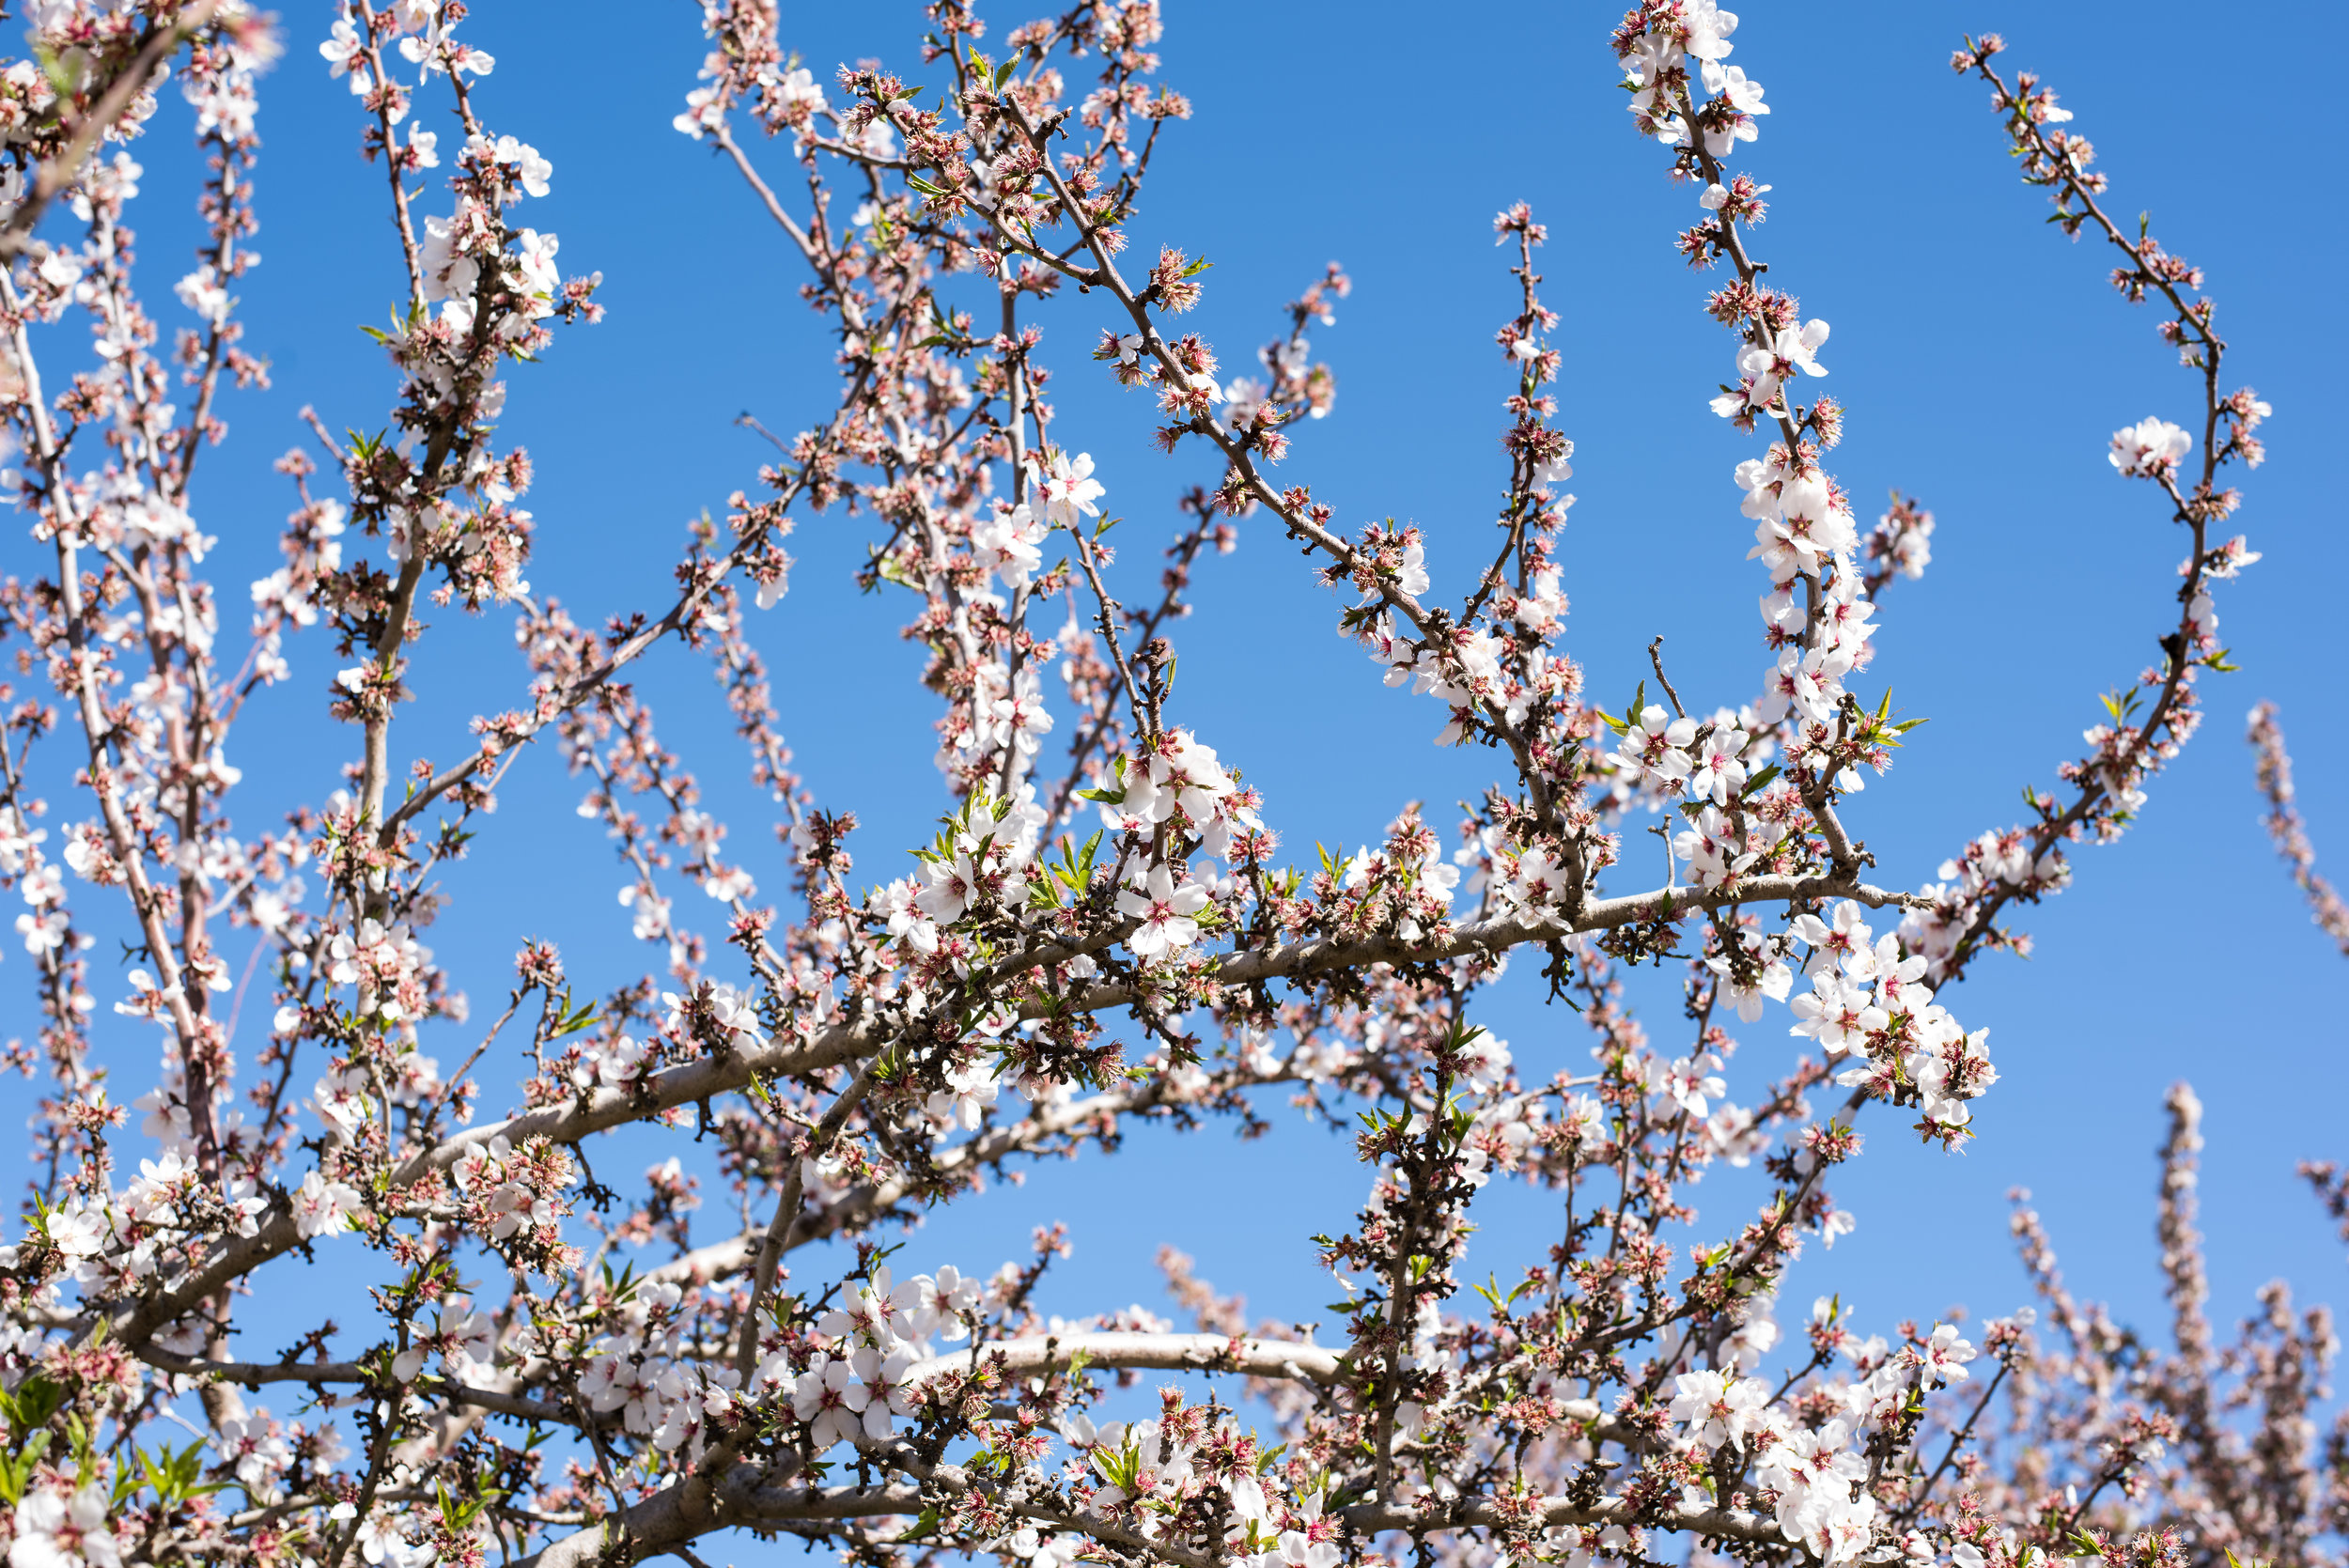 Almonds that grew from these blooms were used to make Almond Breeze products.